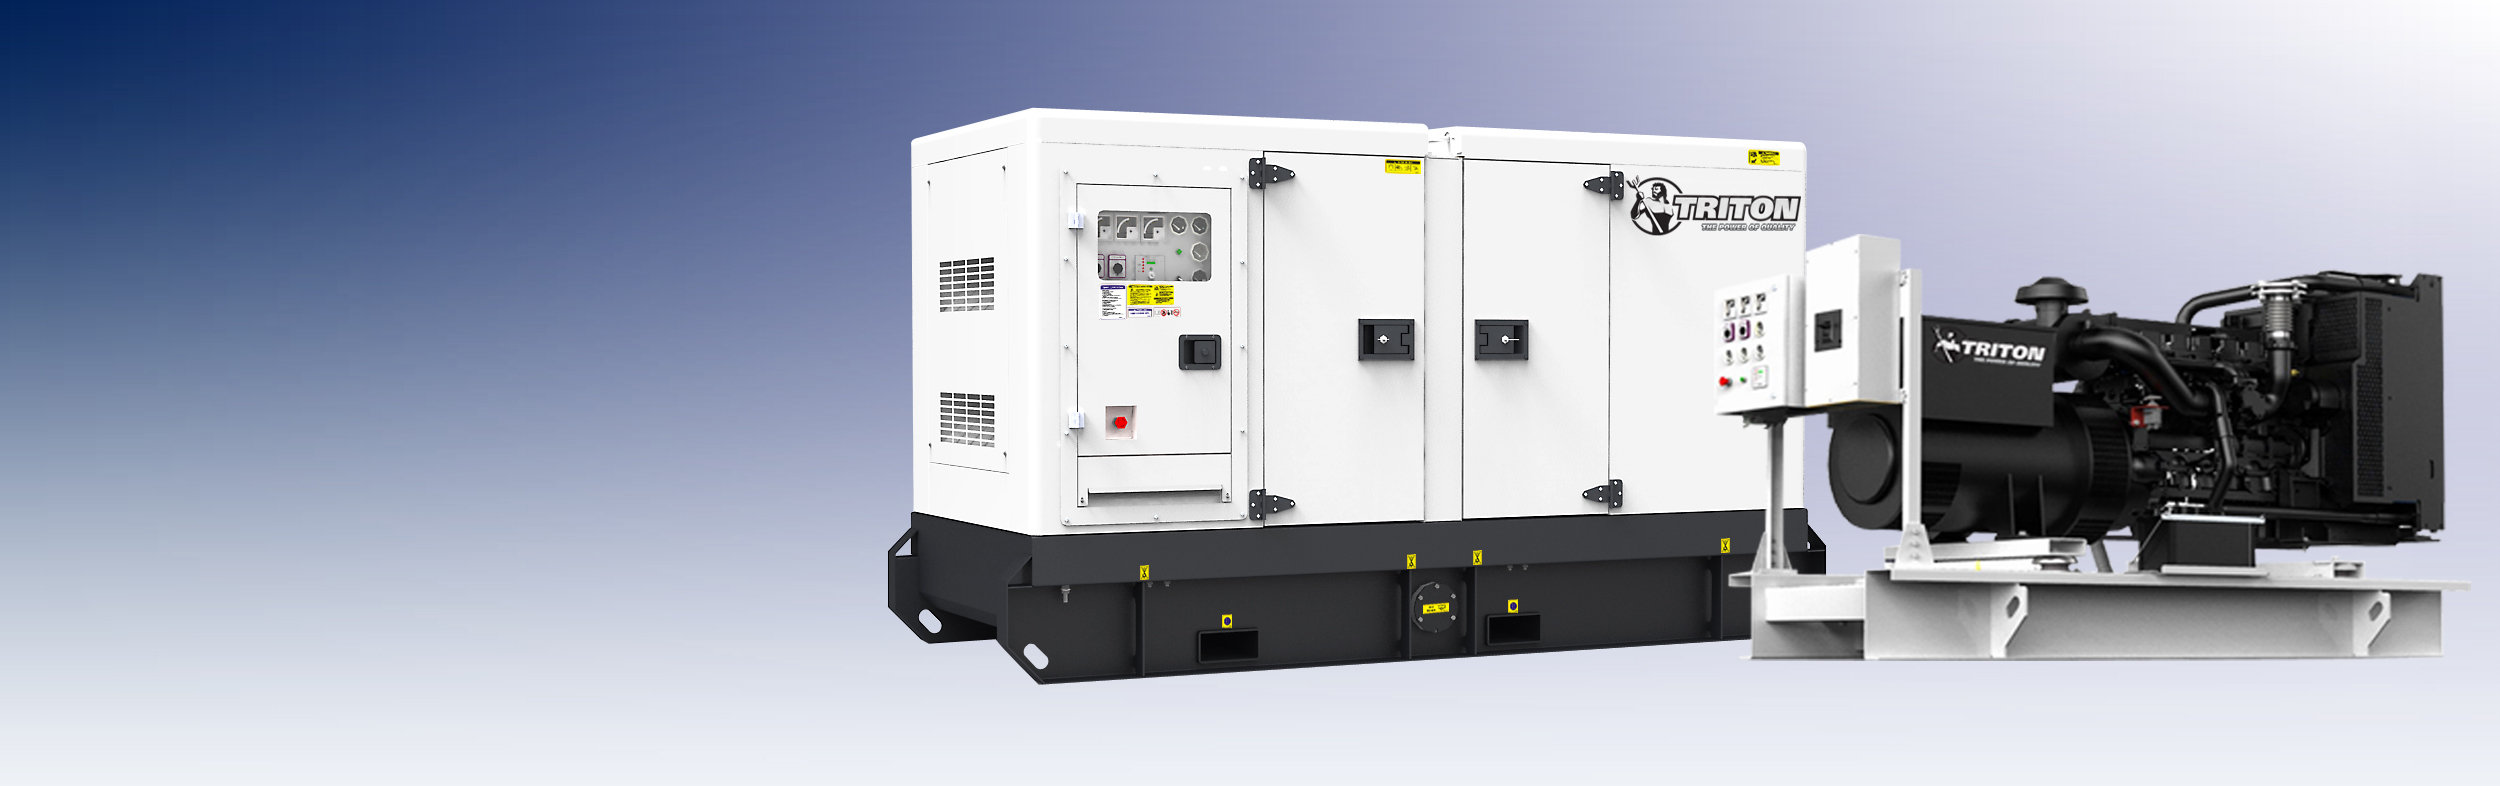 220 Kva Generator Diesel Perkins Automatictransfer Switch Ats 220v 5 Main Circuit Connectionjpg Set 50hz